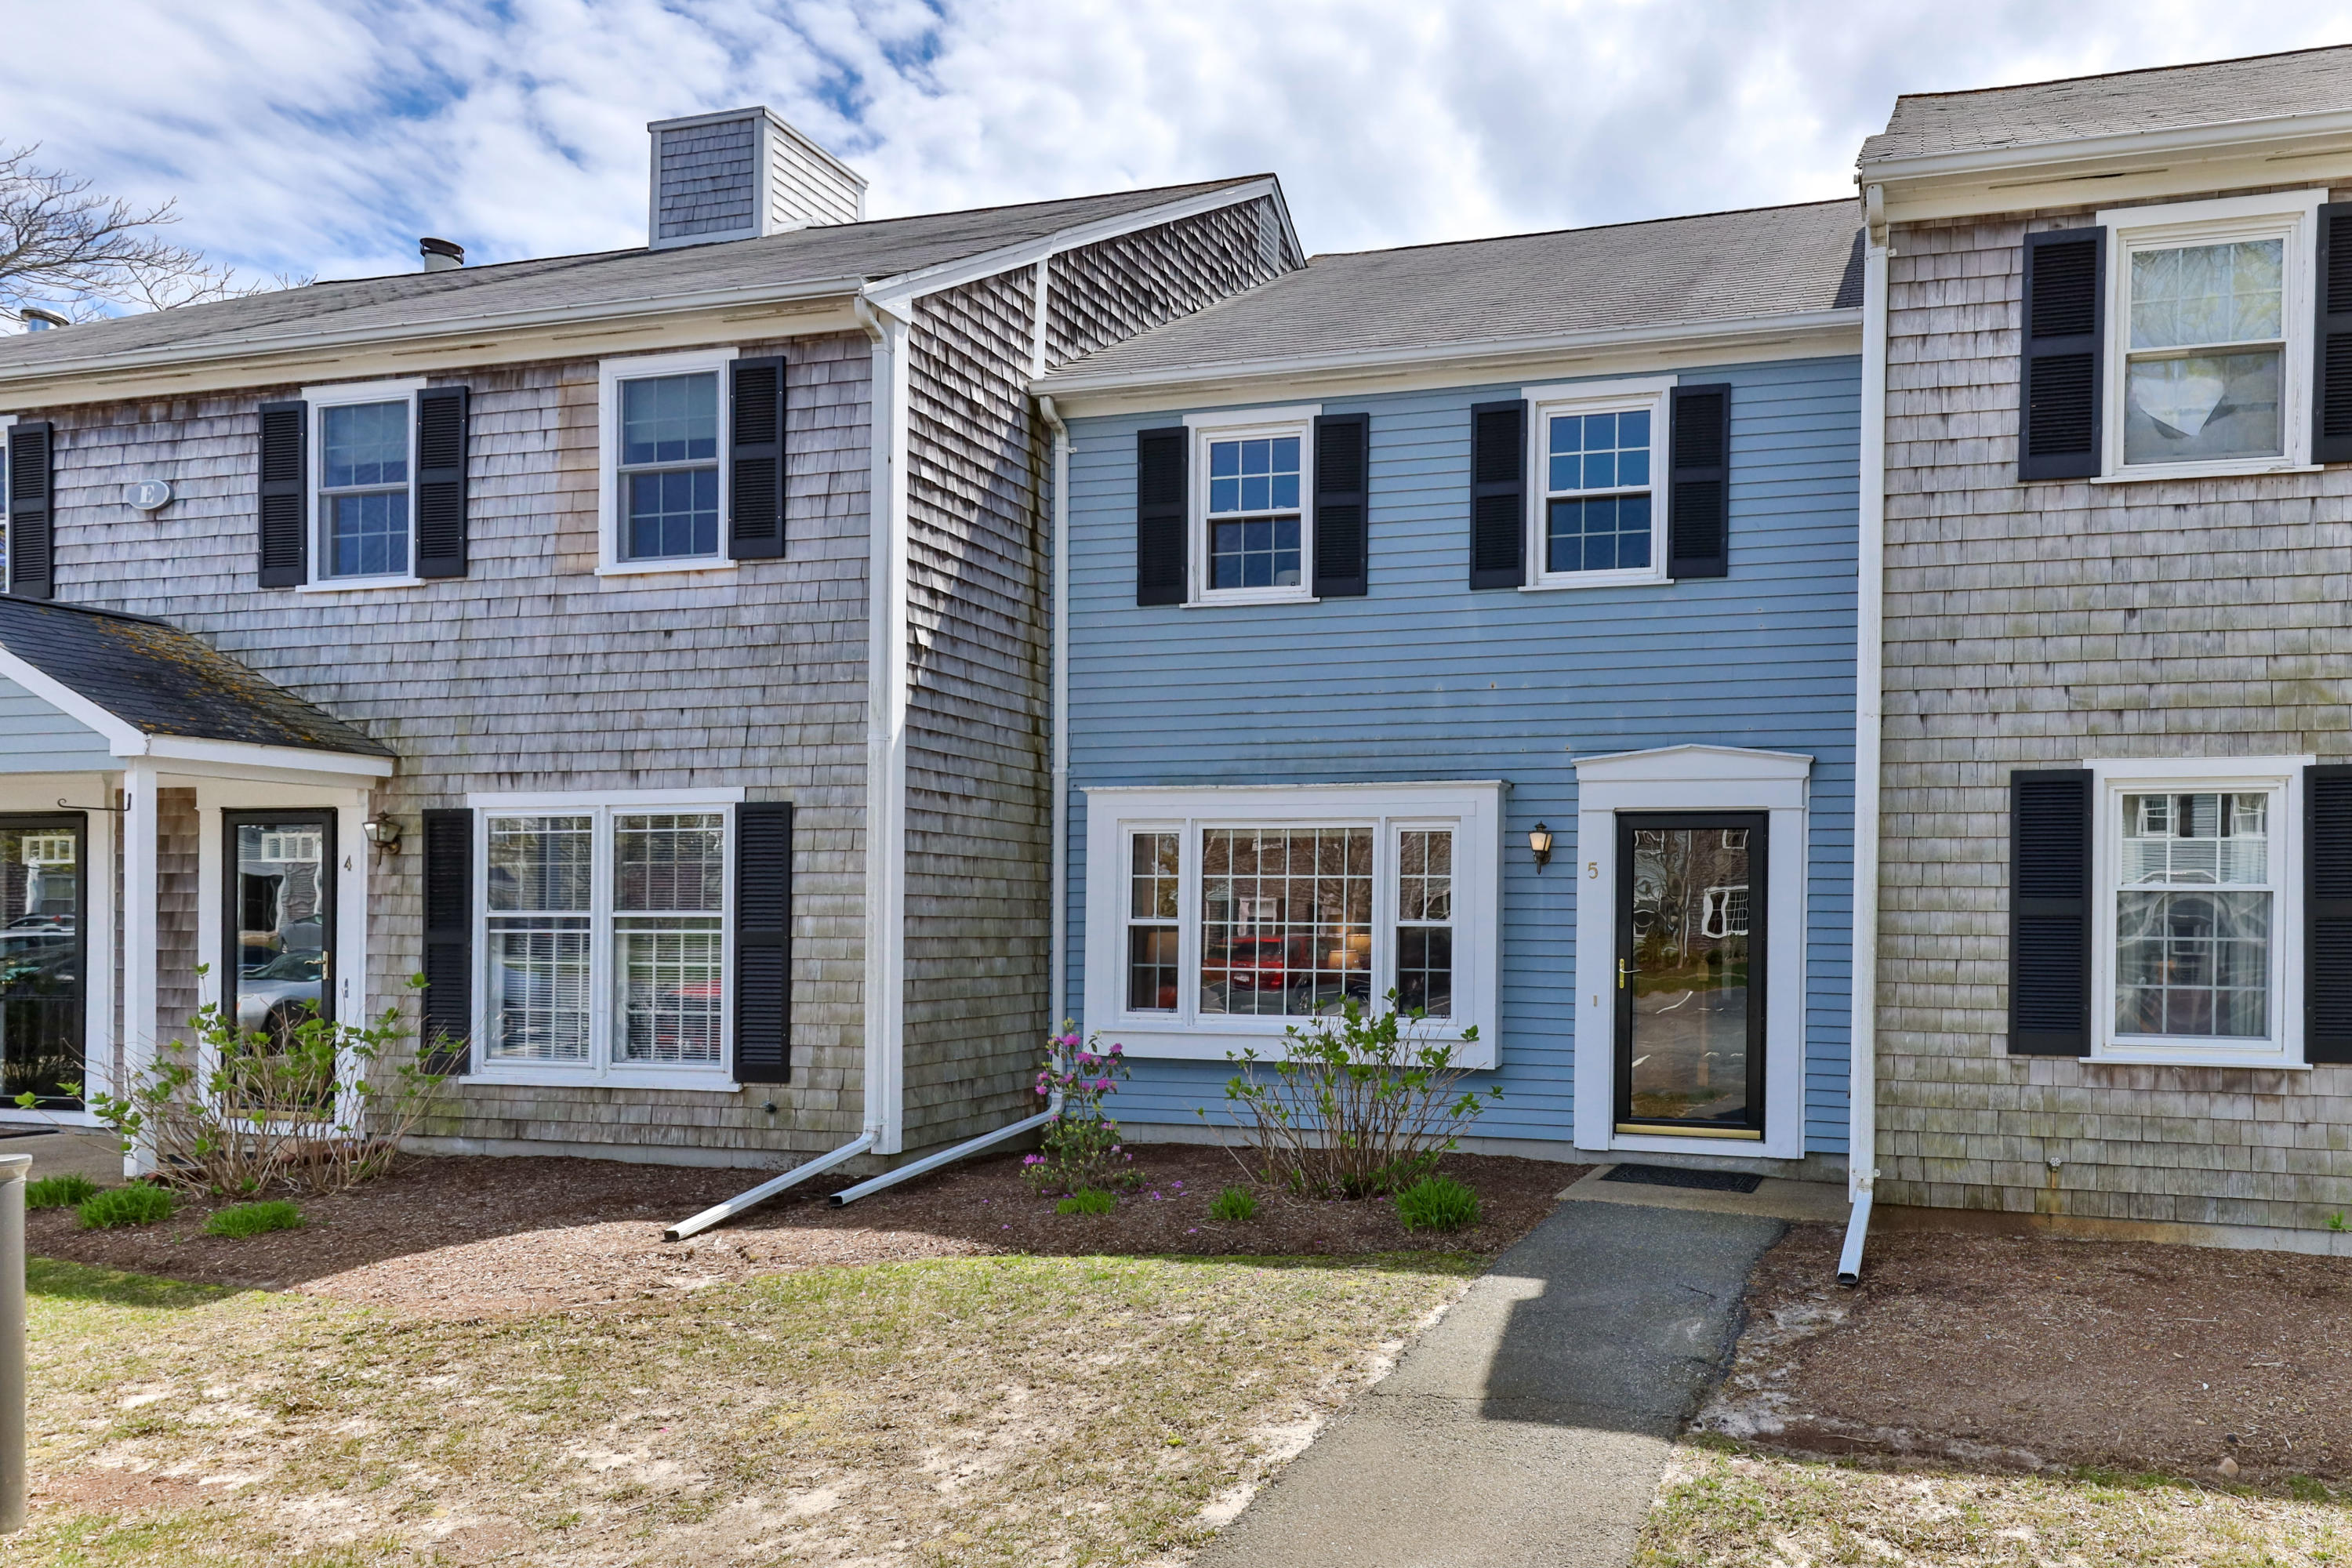 55-old-colony-way-orleans-ma-02653